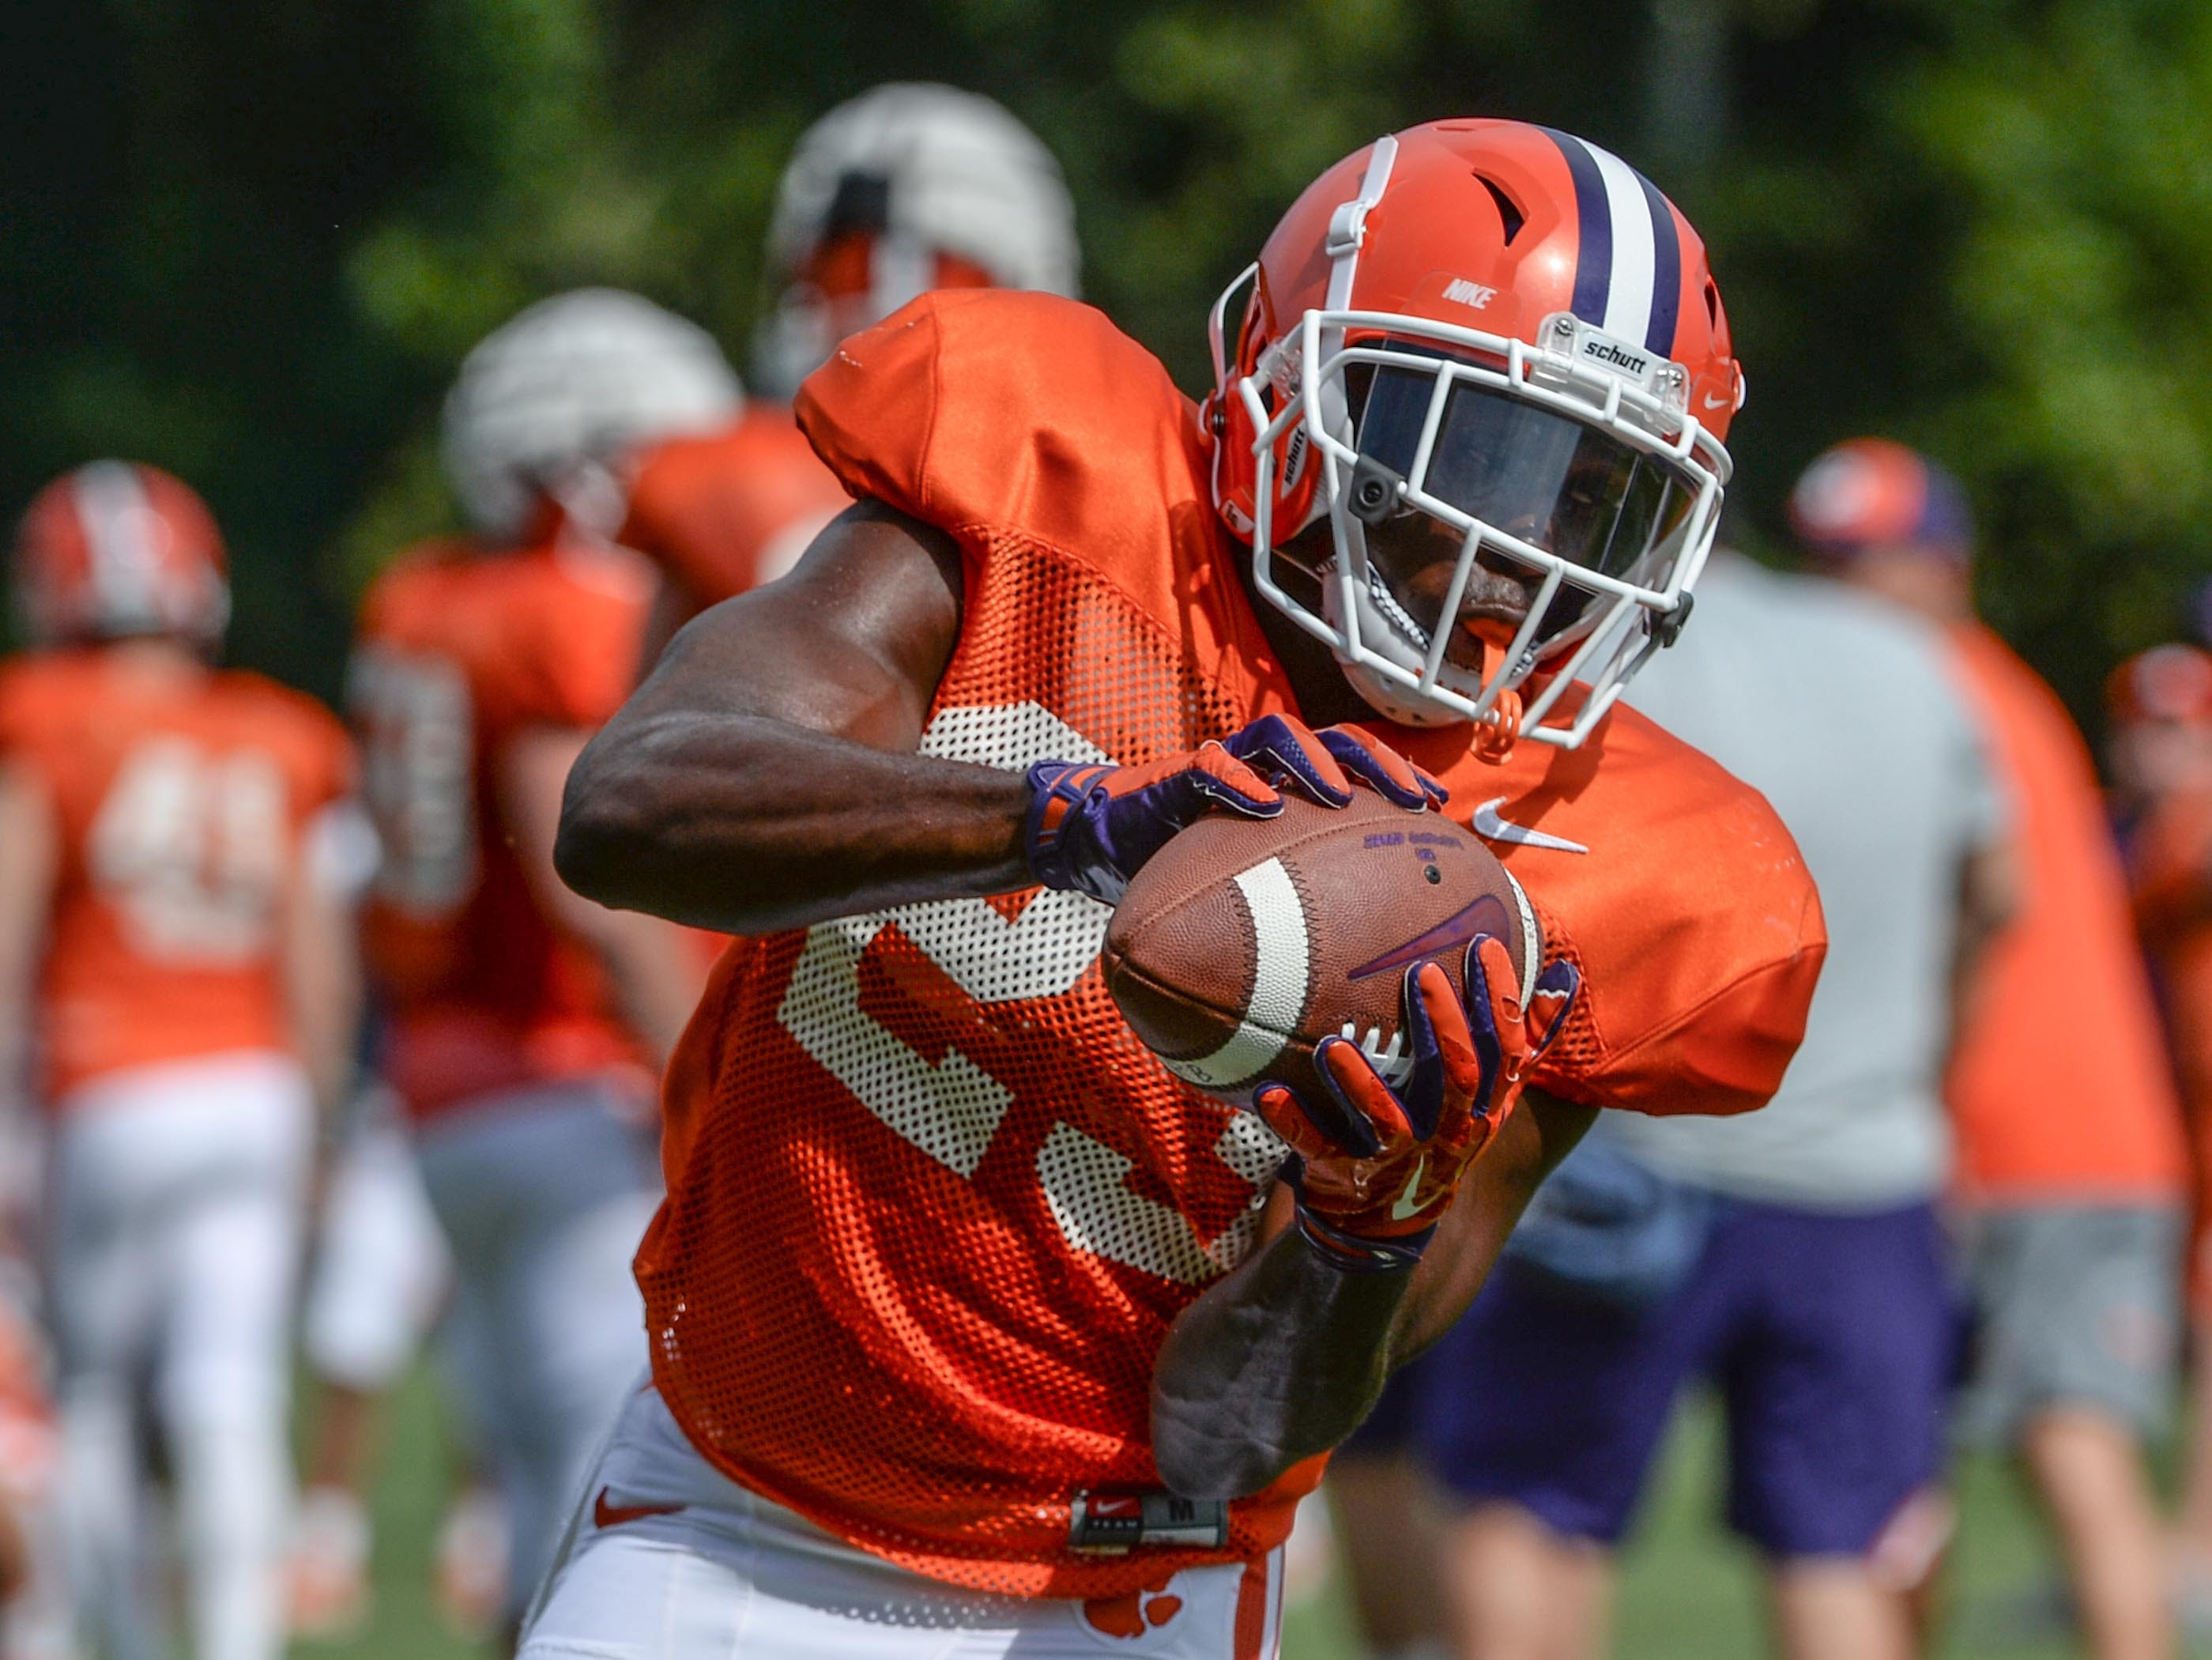 Clemson running back Lyn-J Dixon (23) during fall practice in Clemson on Wednesday.